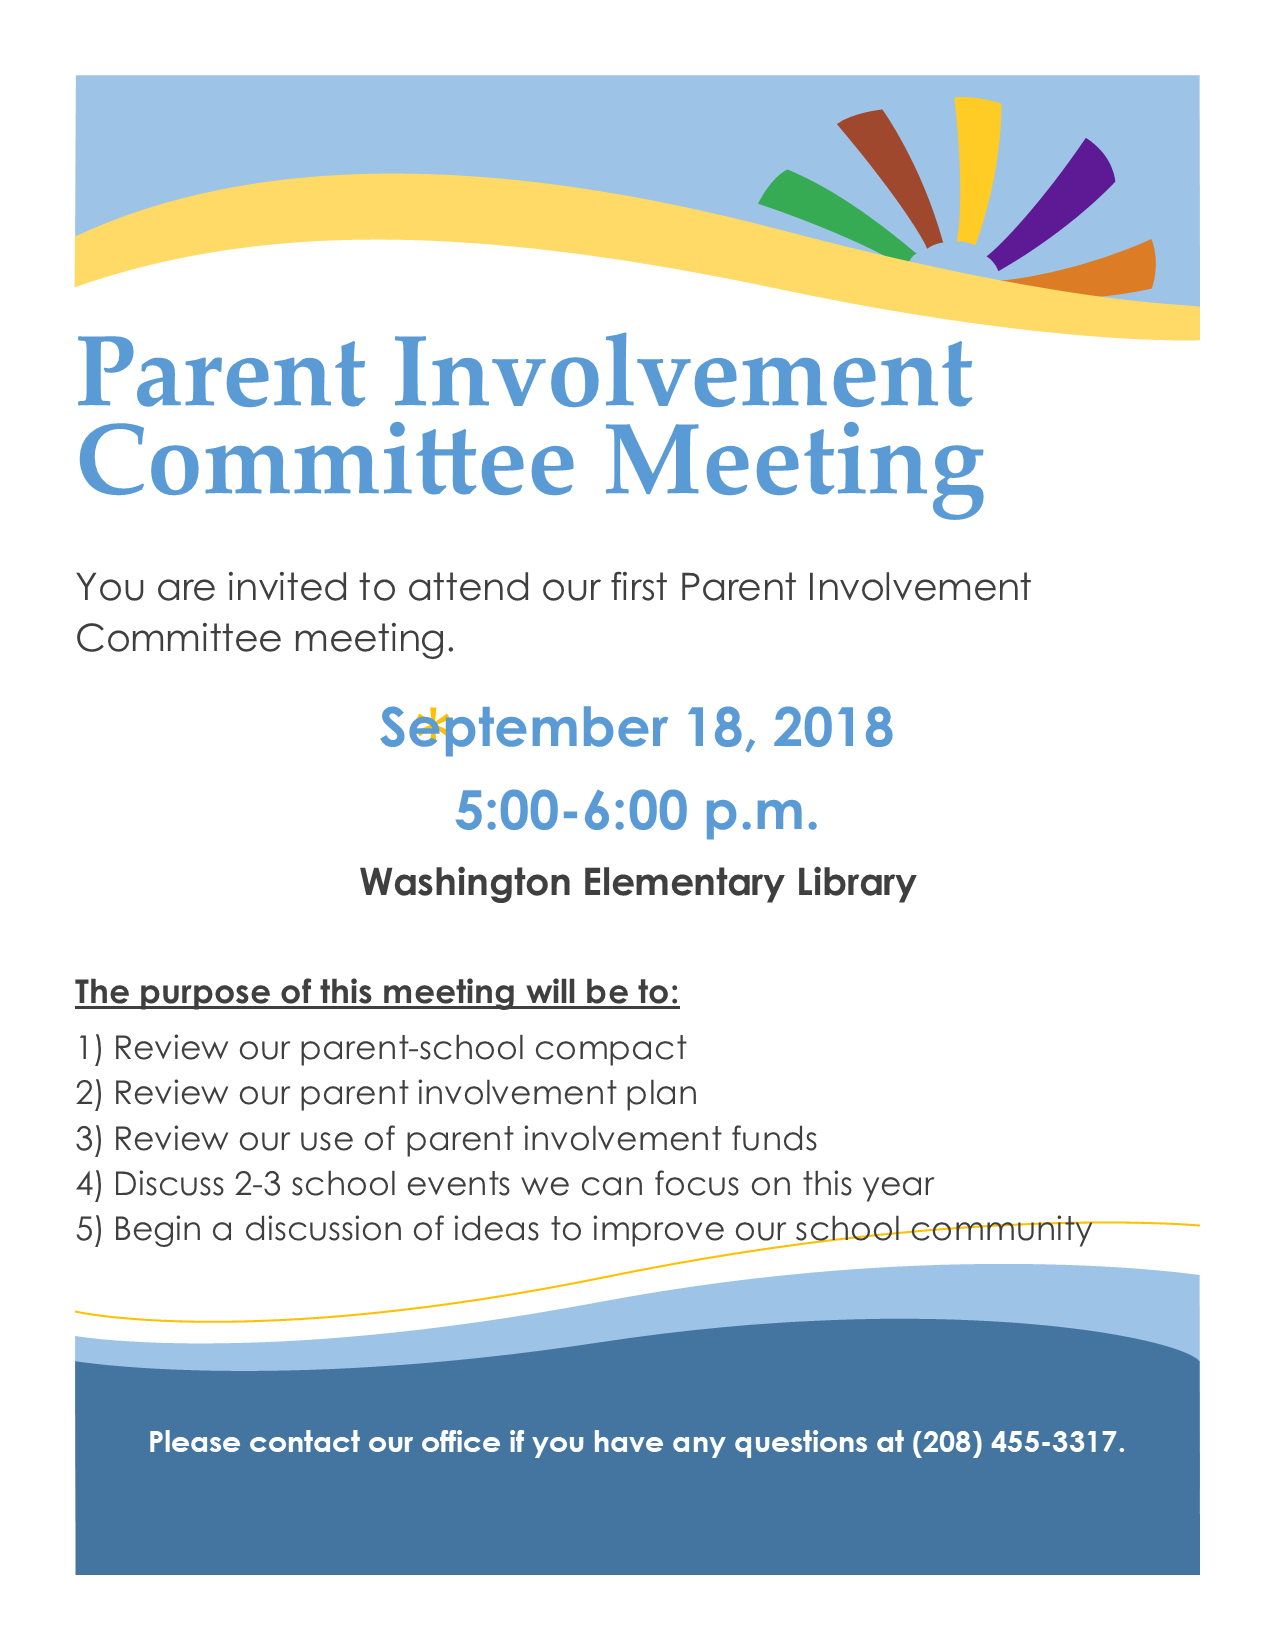 Flyer for Parent Involvement meeting on September 18th, at 5pm.